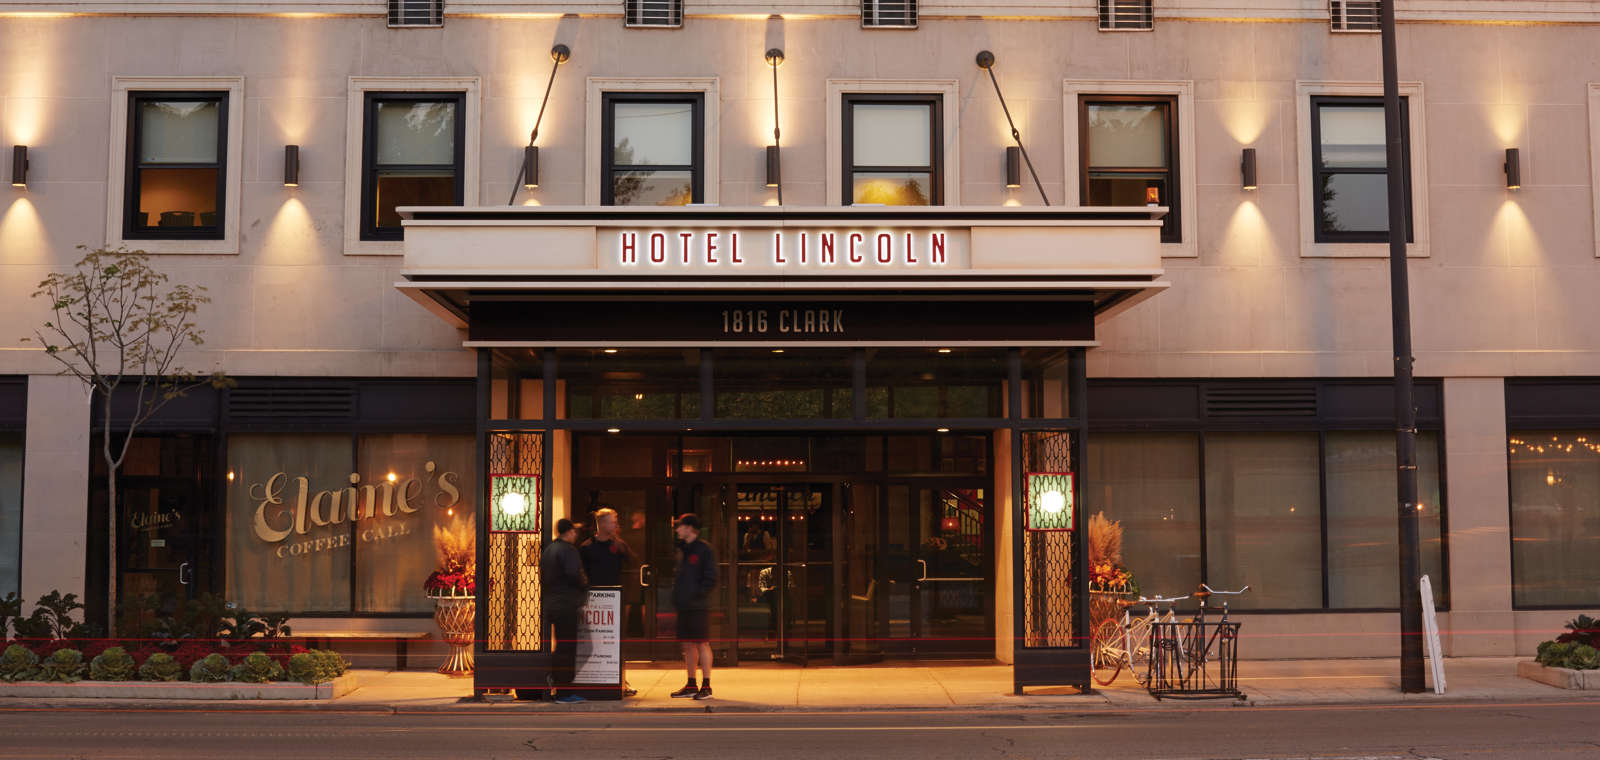 Hotel Lincoln: Exterior